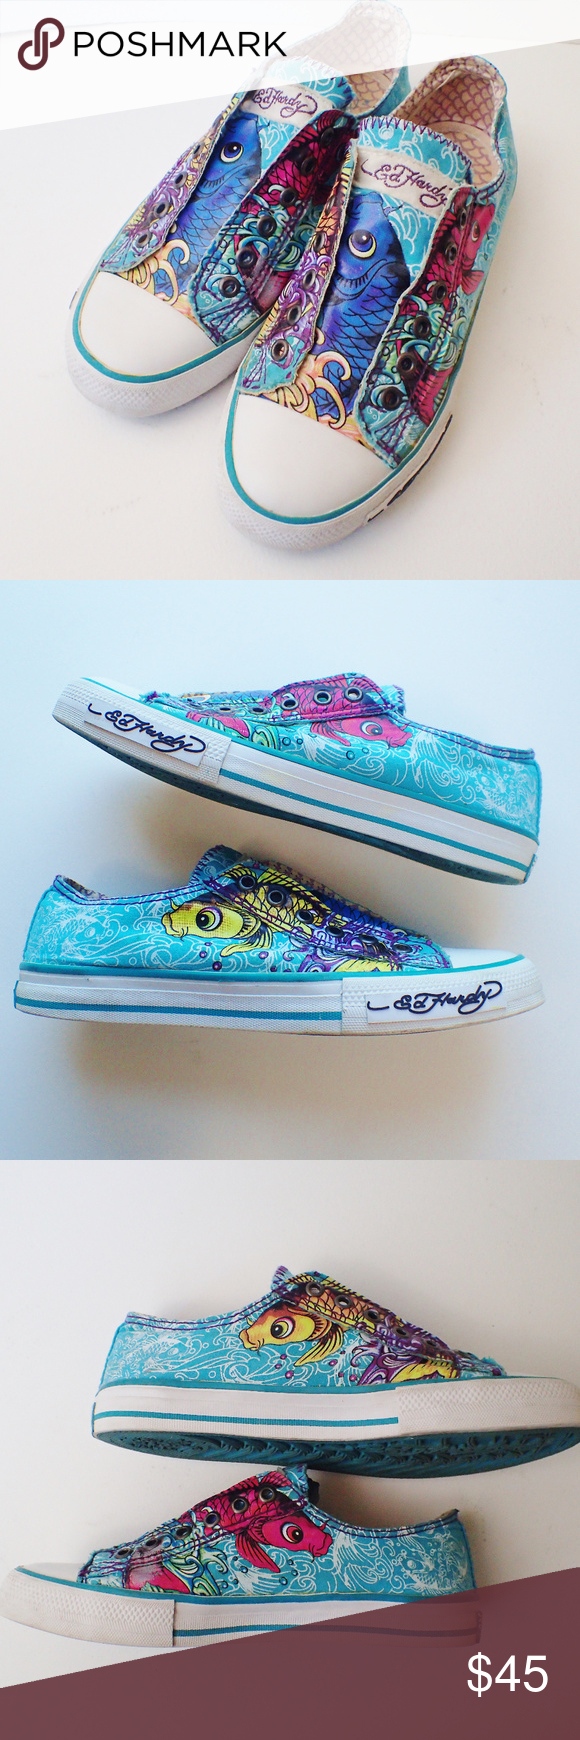 cf64e9c69d Ed Hardy Slip-On Coy Fish Sneakers Size 8 Beautiful pre-loved condition!